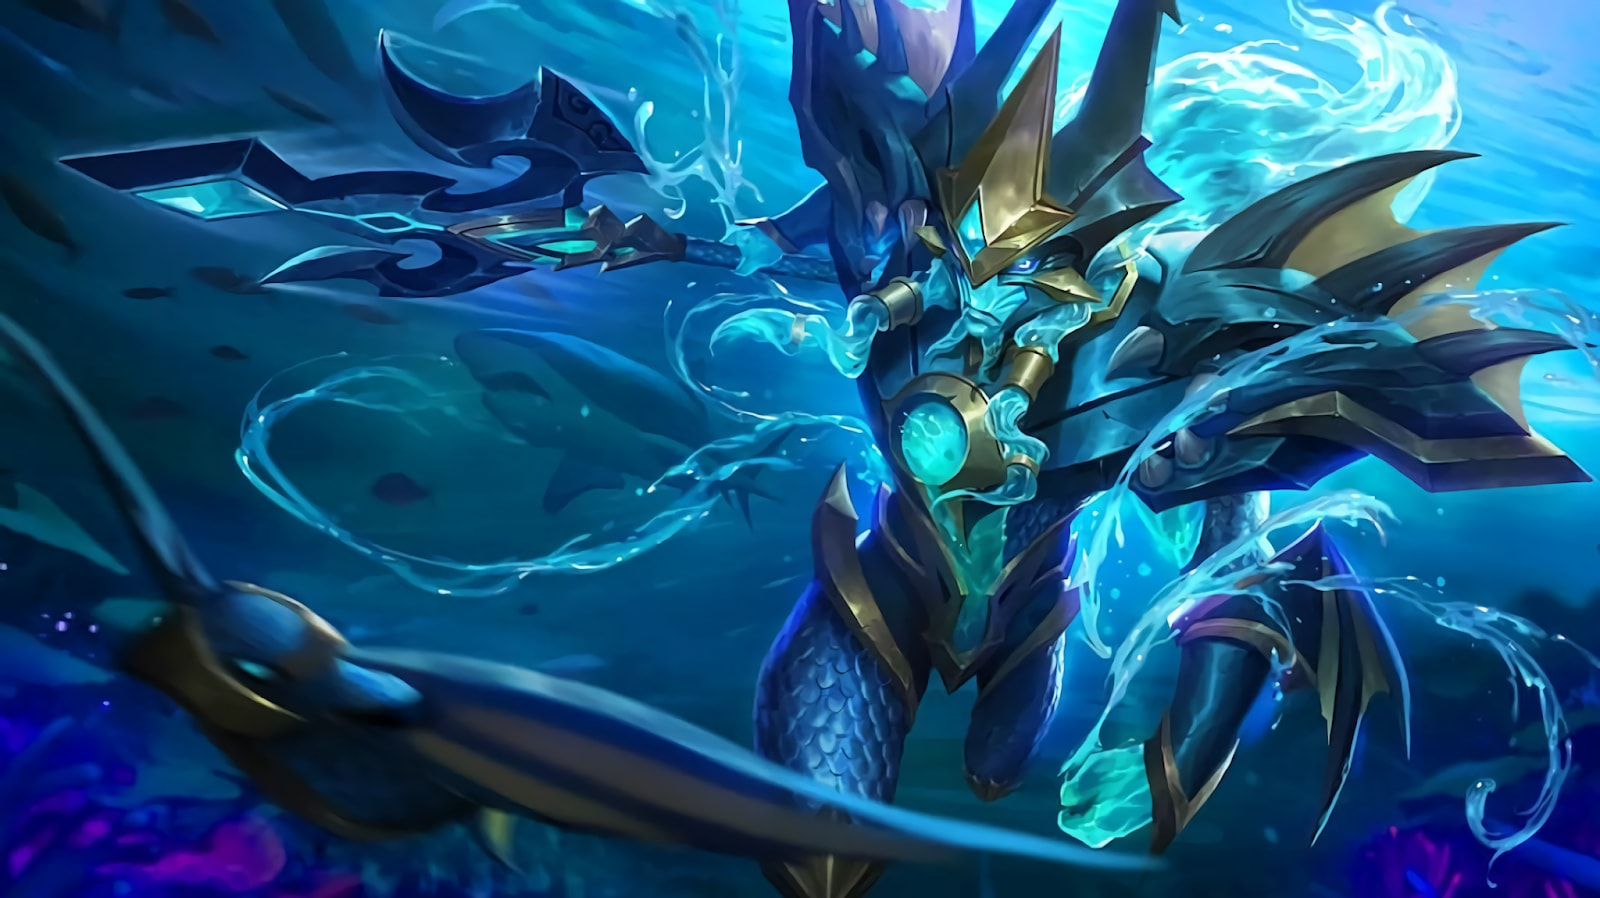 Wallpaper Alpha Sea Gladiator Skin Mobile Legends Full HD for PC